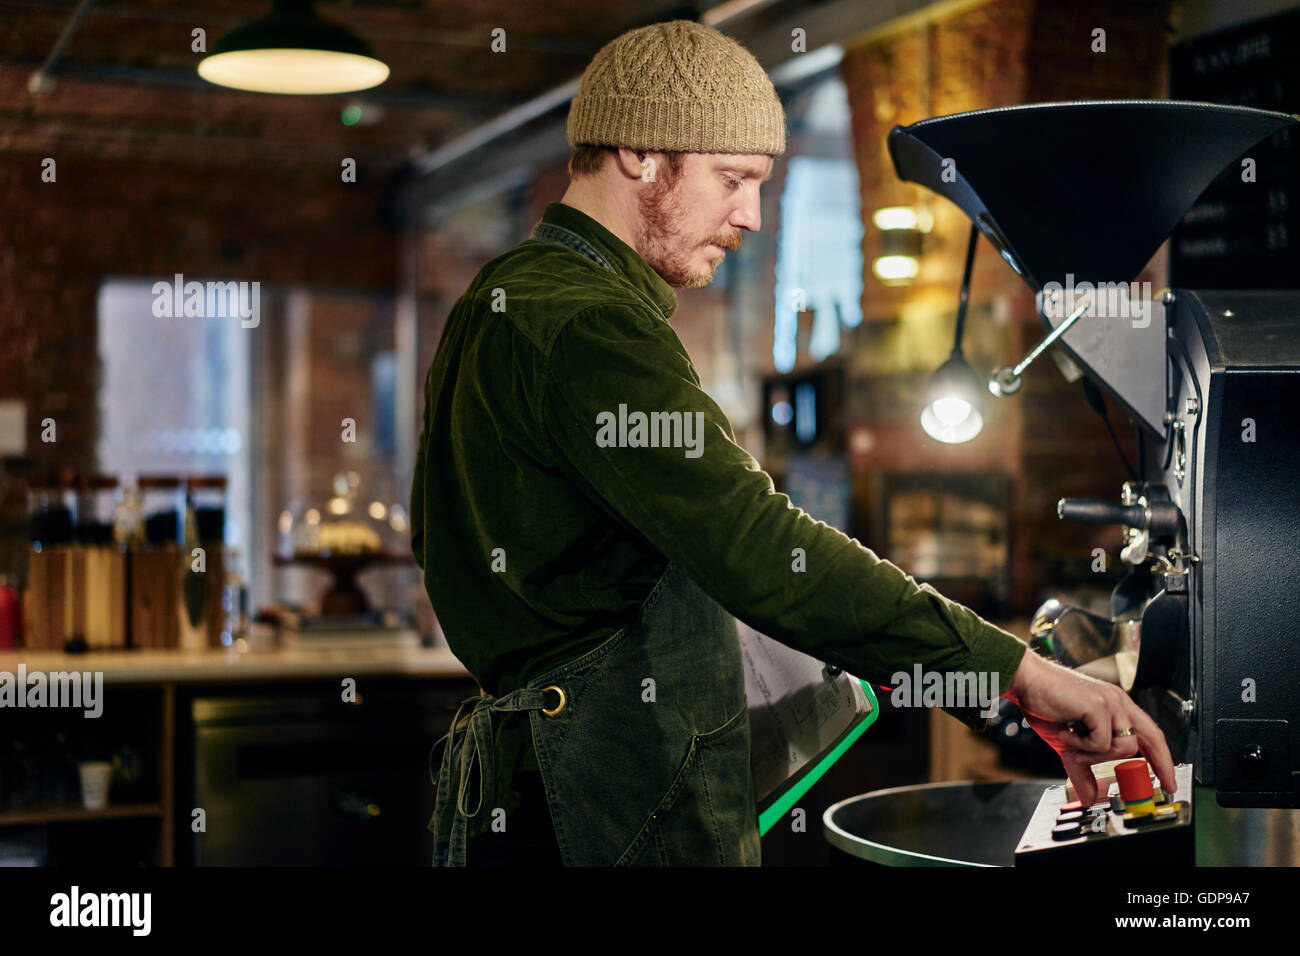 Male coffee shop owner using coffee roaster - Stock Image